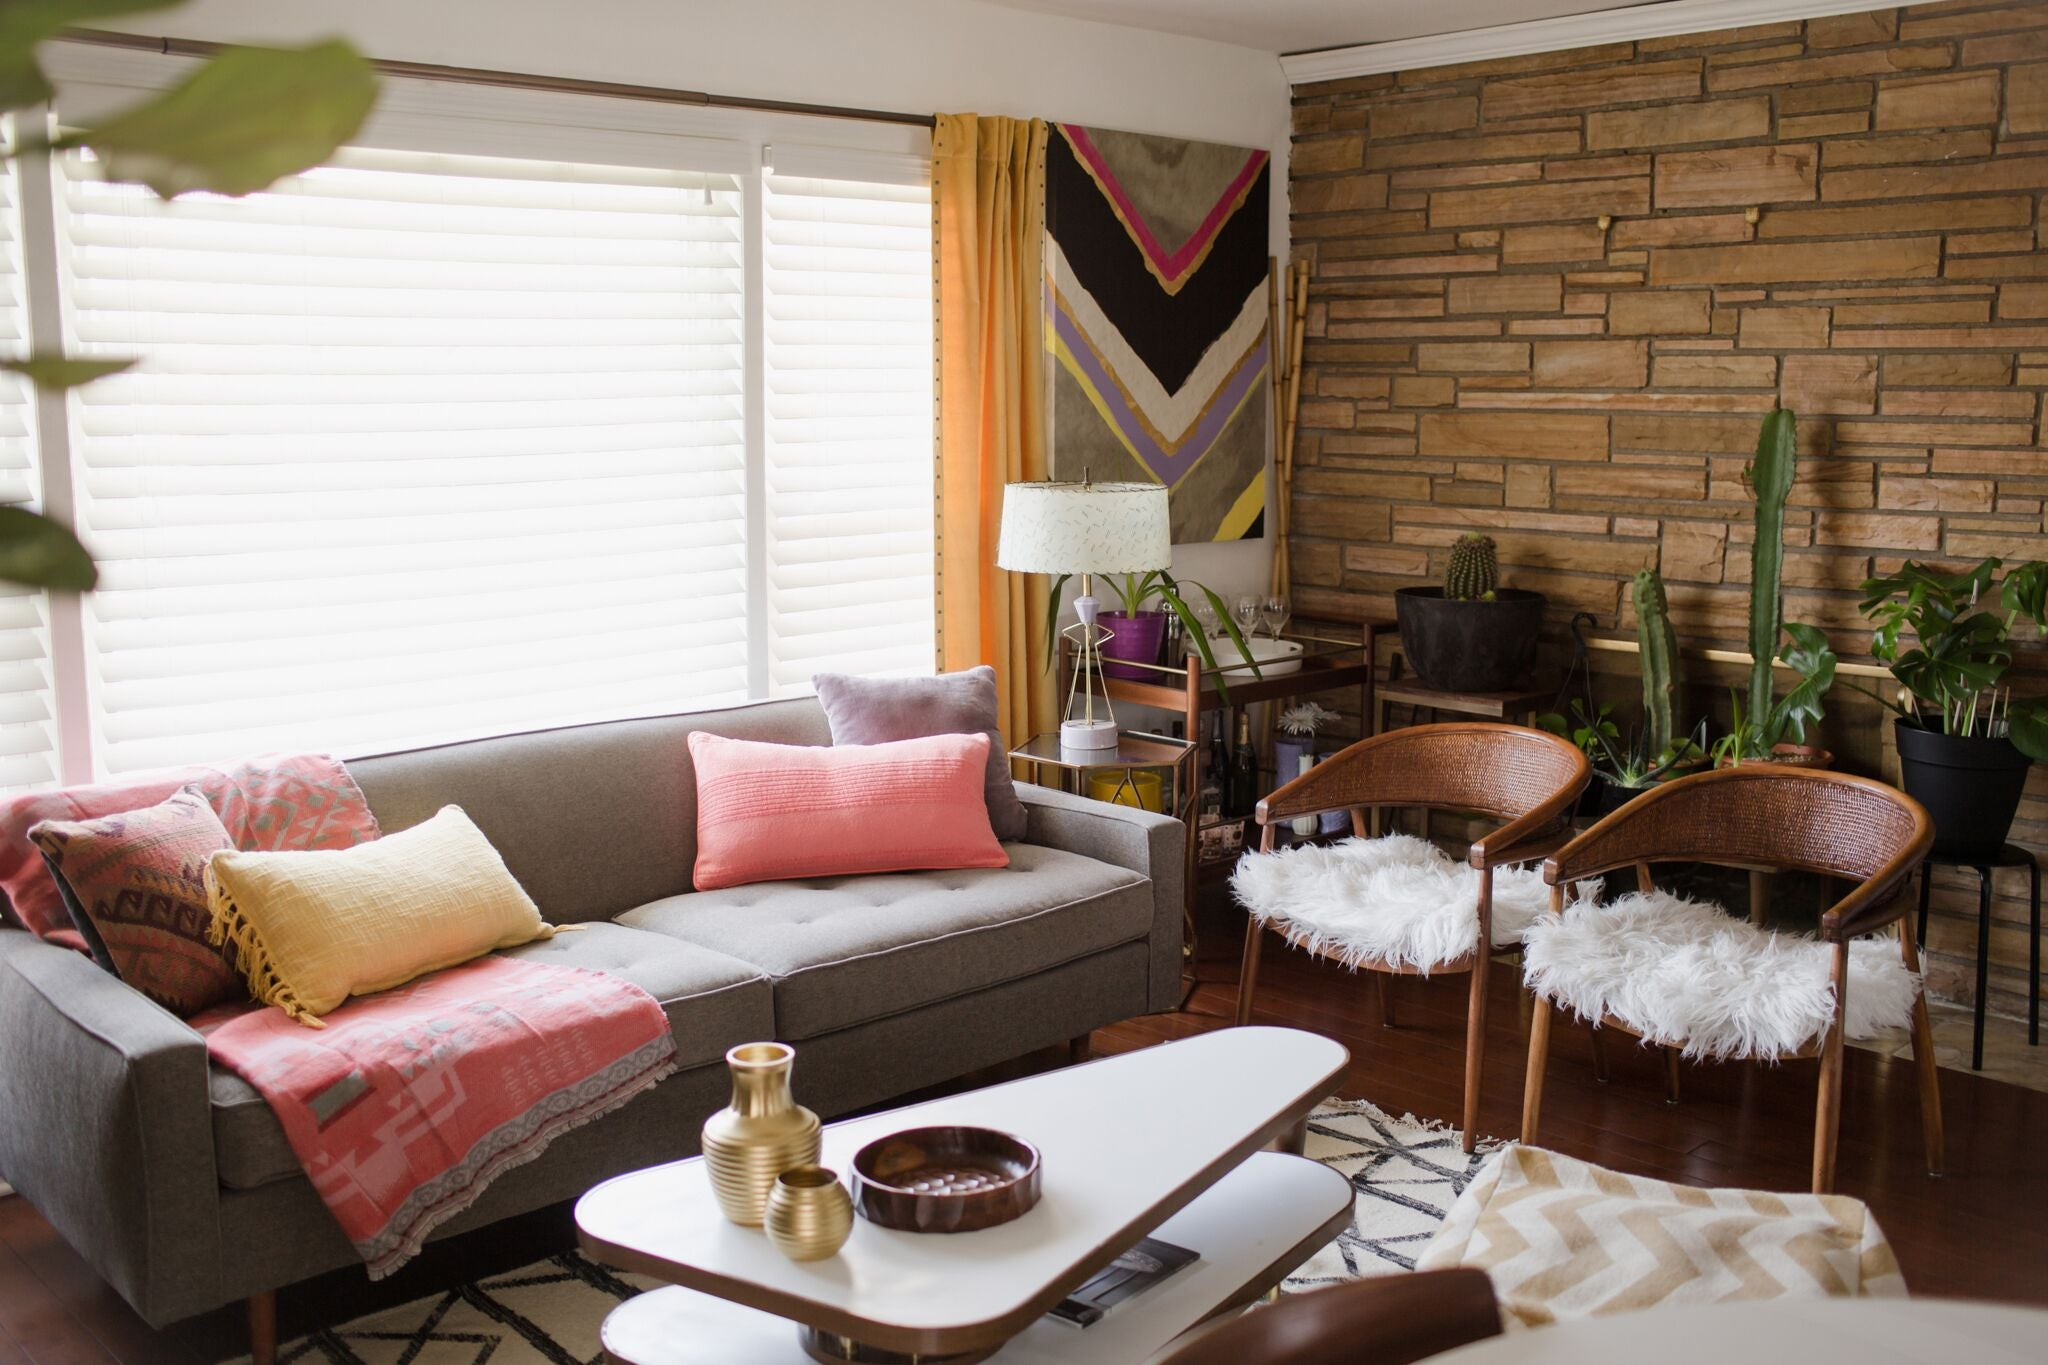 decorating ONE room 3 different ways on astral riles blog 11